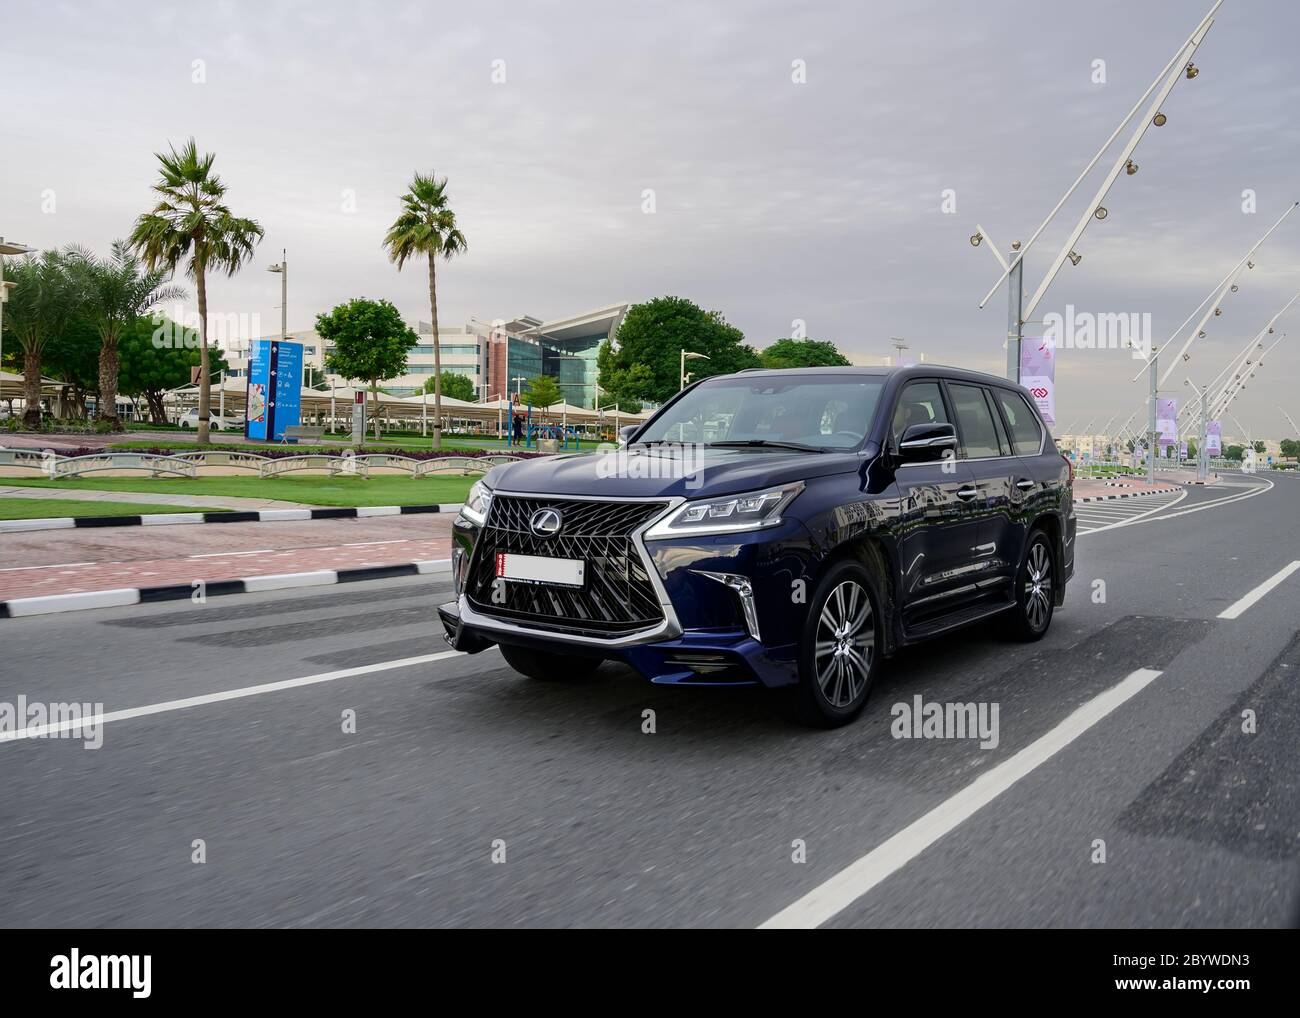 Lexus Lx 570 Model Of 2020 Full Size Luxury Suv A Luxury Division Of Toyota Stock Photo Alamy